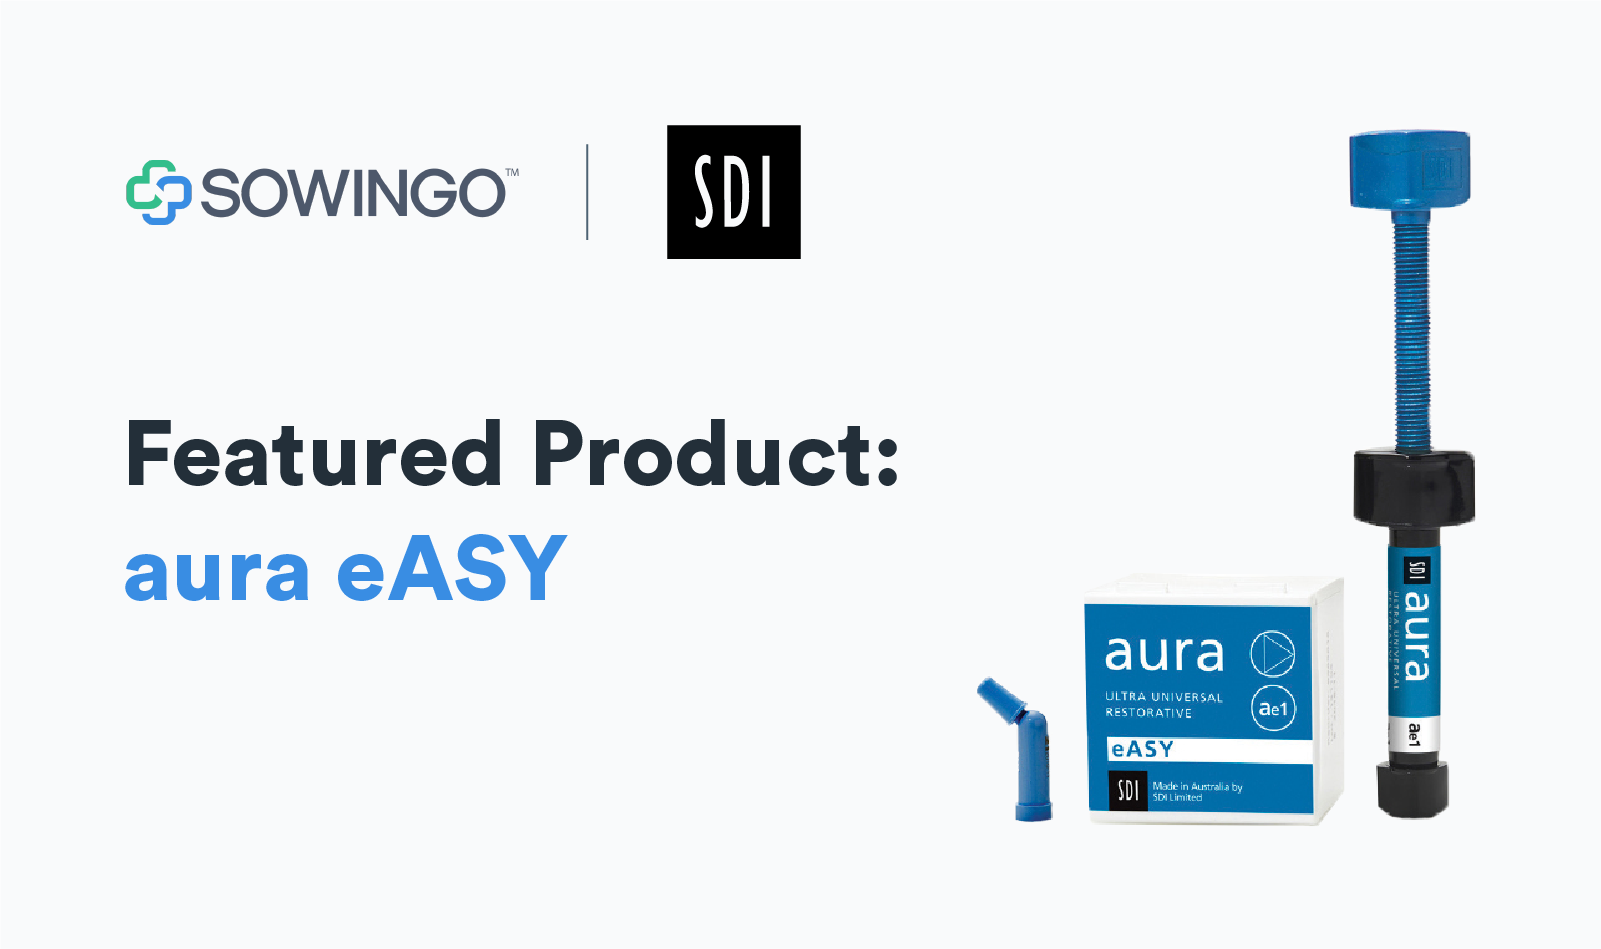 Featured Product aura eASY